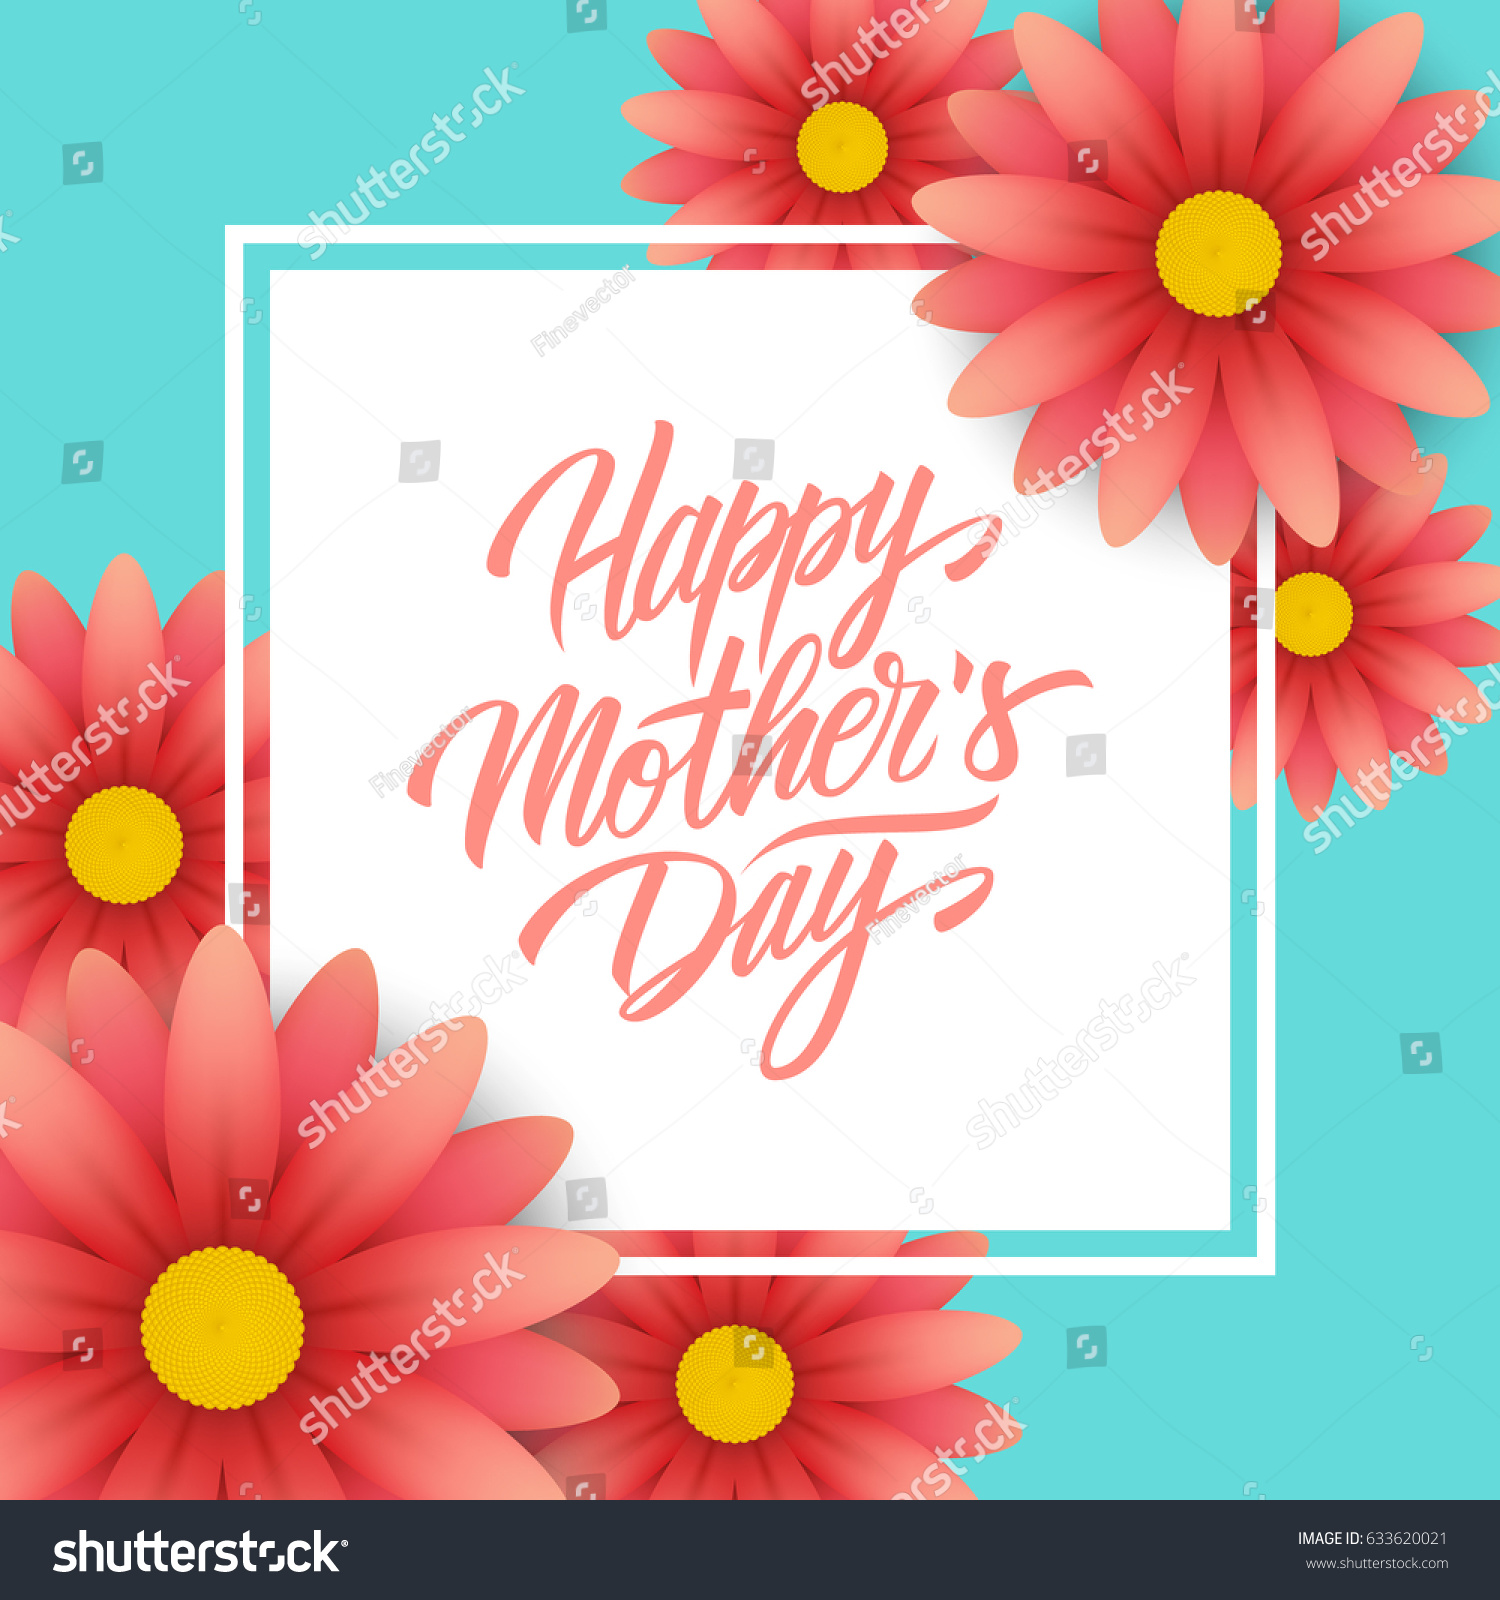 Happy mothers day greeting card calligraphic stock vector 633620021 happy mothers day greeting card with calligraphic lettering text design and blossom flowers creative template m4hsunfo